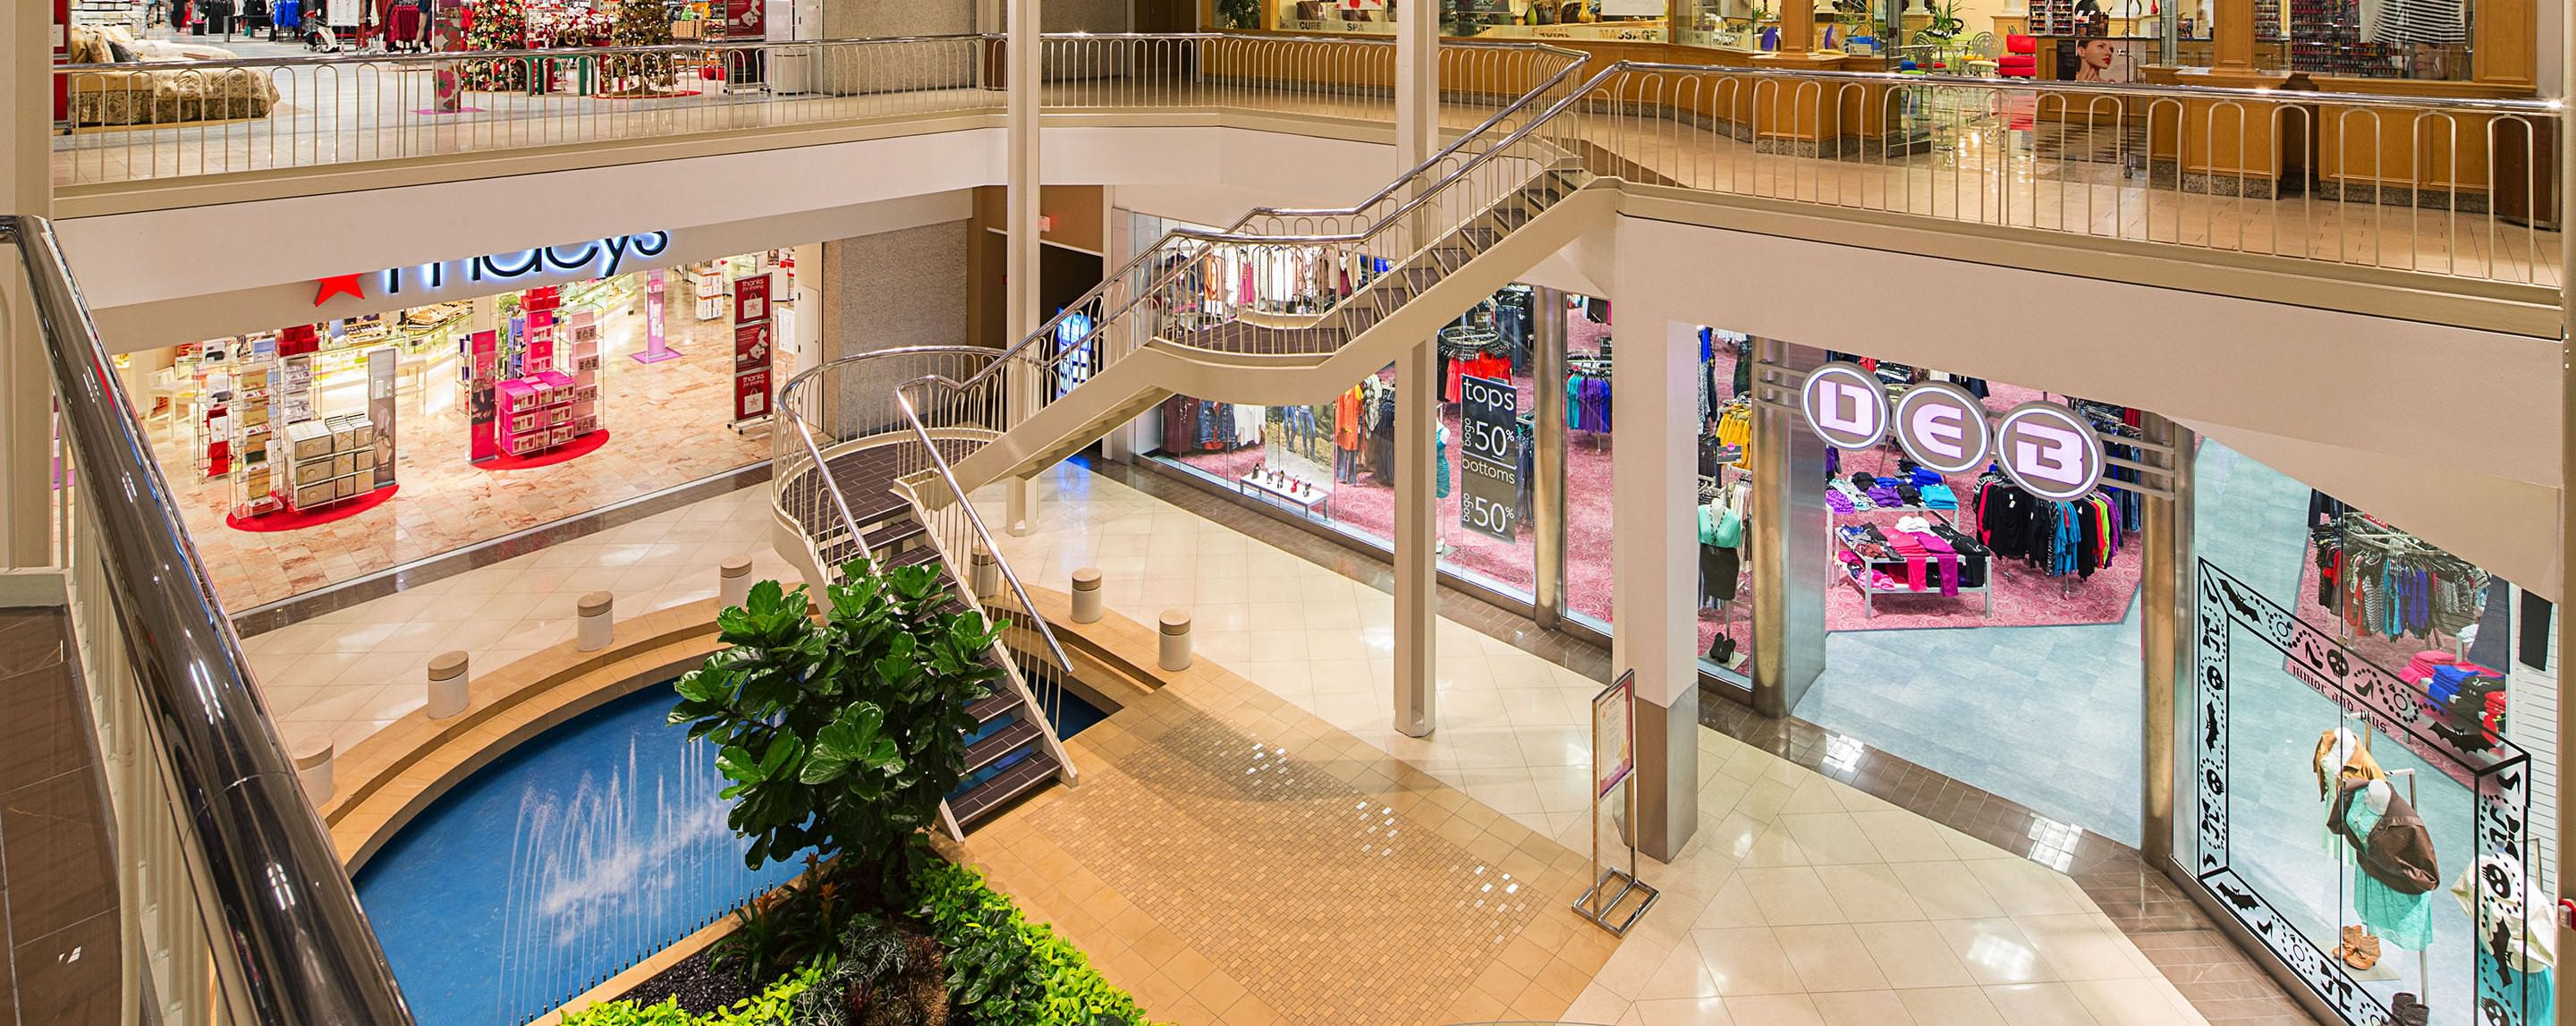 On the upper level of the Hulen Mall indoor atrium, shoppers can see the running fountain and greenery in the lower level.